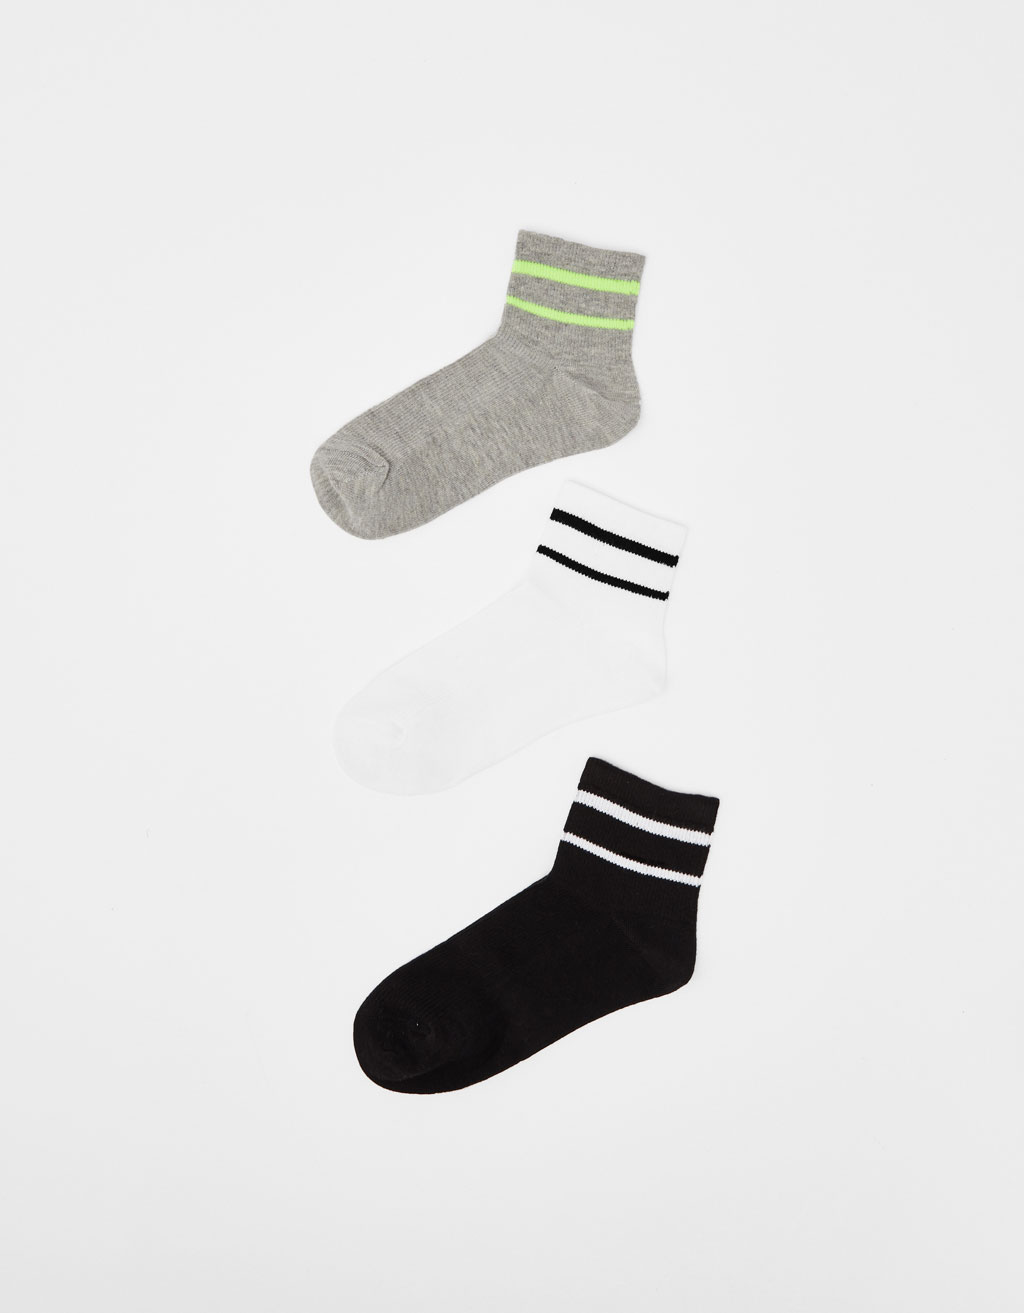 Pack of sports socks